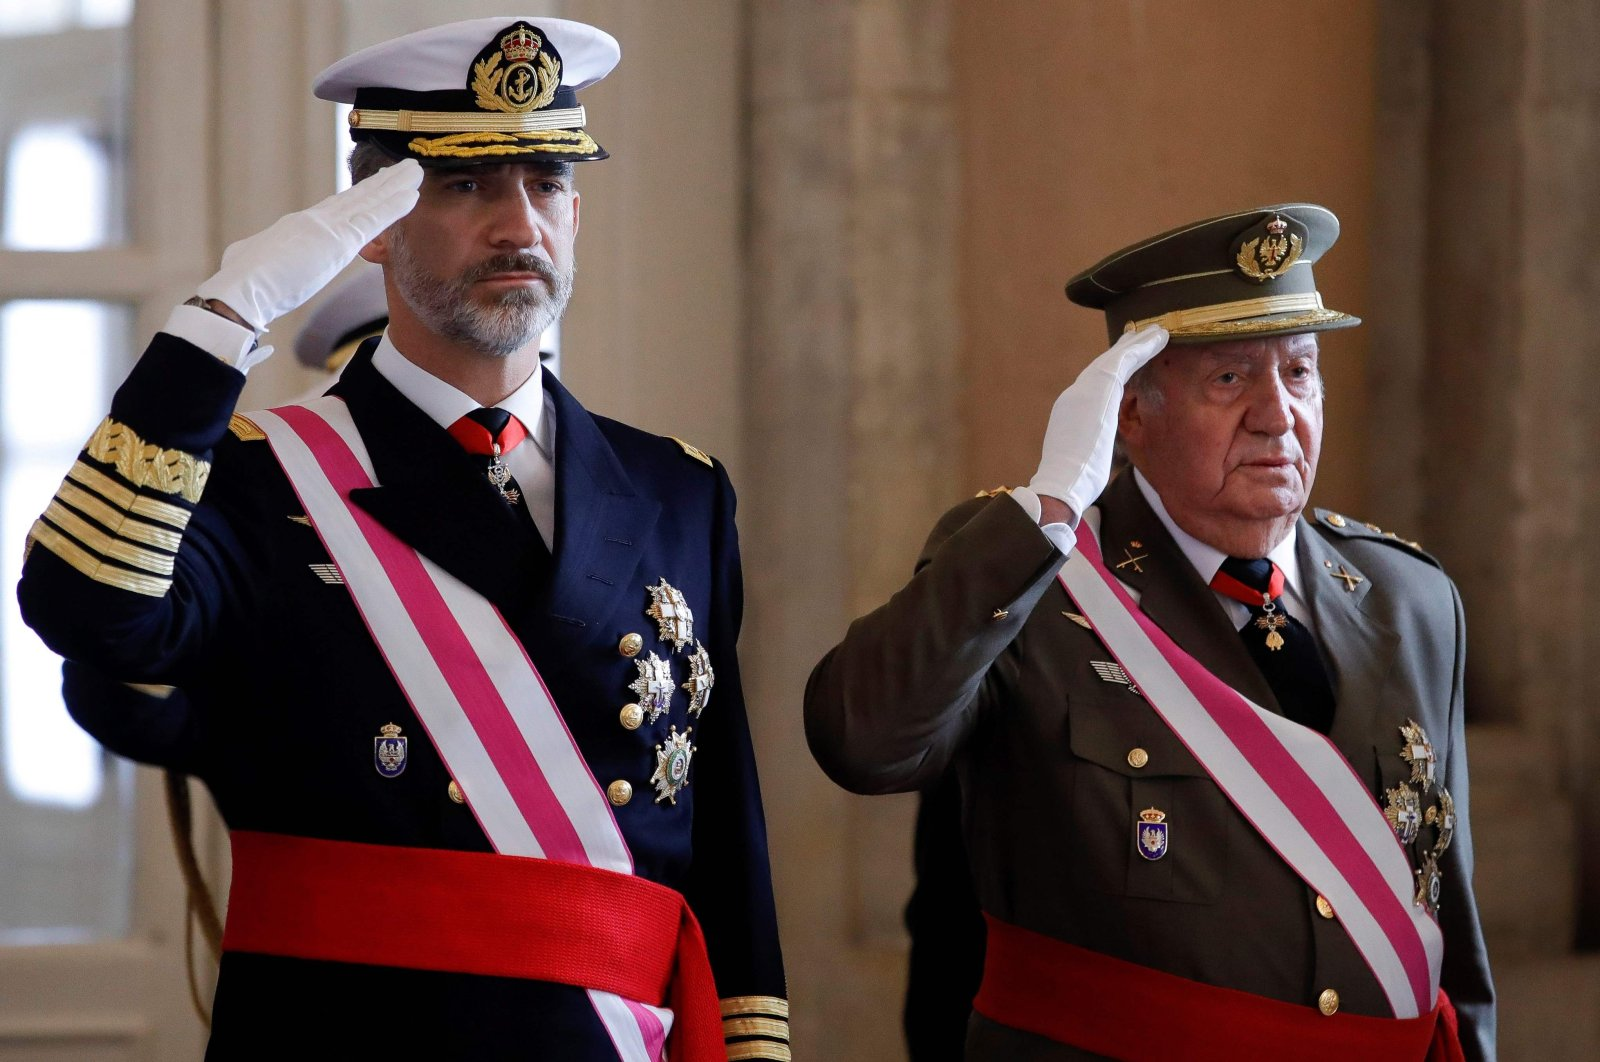 In this file photo taken Jan. 6, 2018, Spain's King Felipe VI (L) and his father King Emeritus Juan Carlos I salute during the Epiphany Day celebrations (Pascua Militar) at the Royal Palace in Madrid. (AFP Photo)